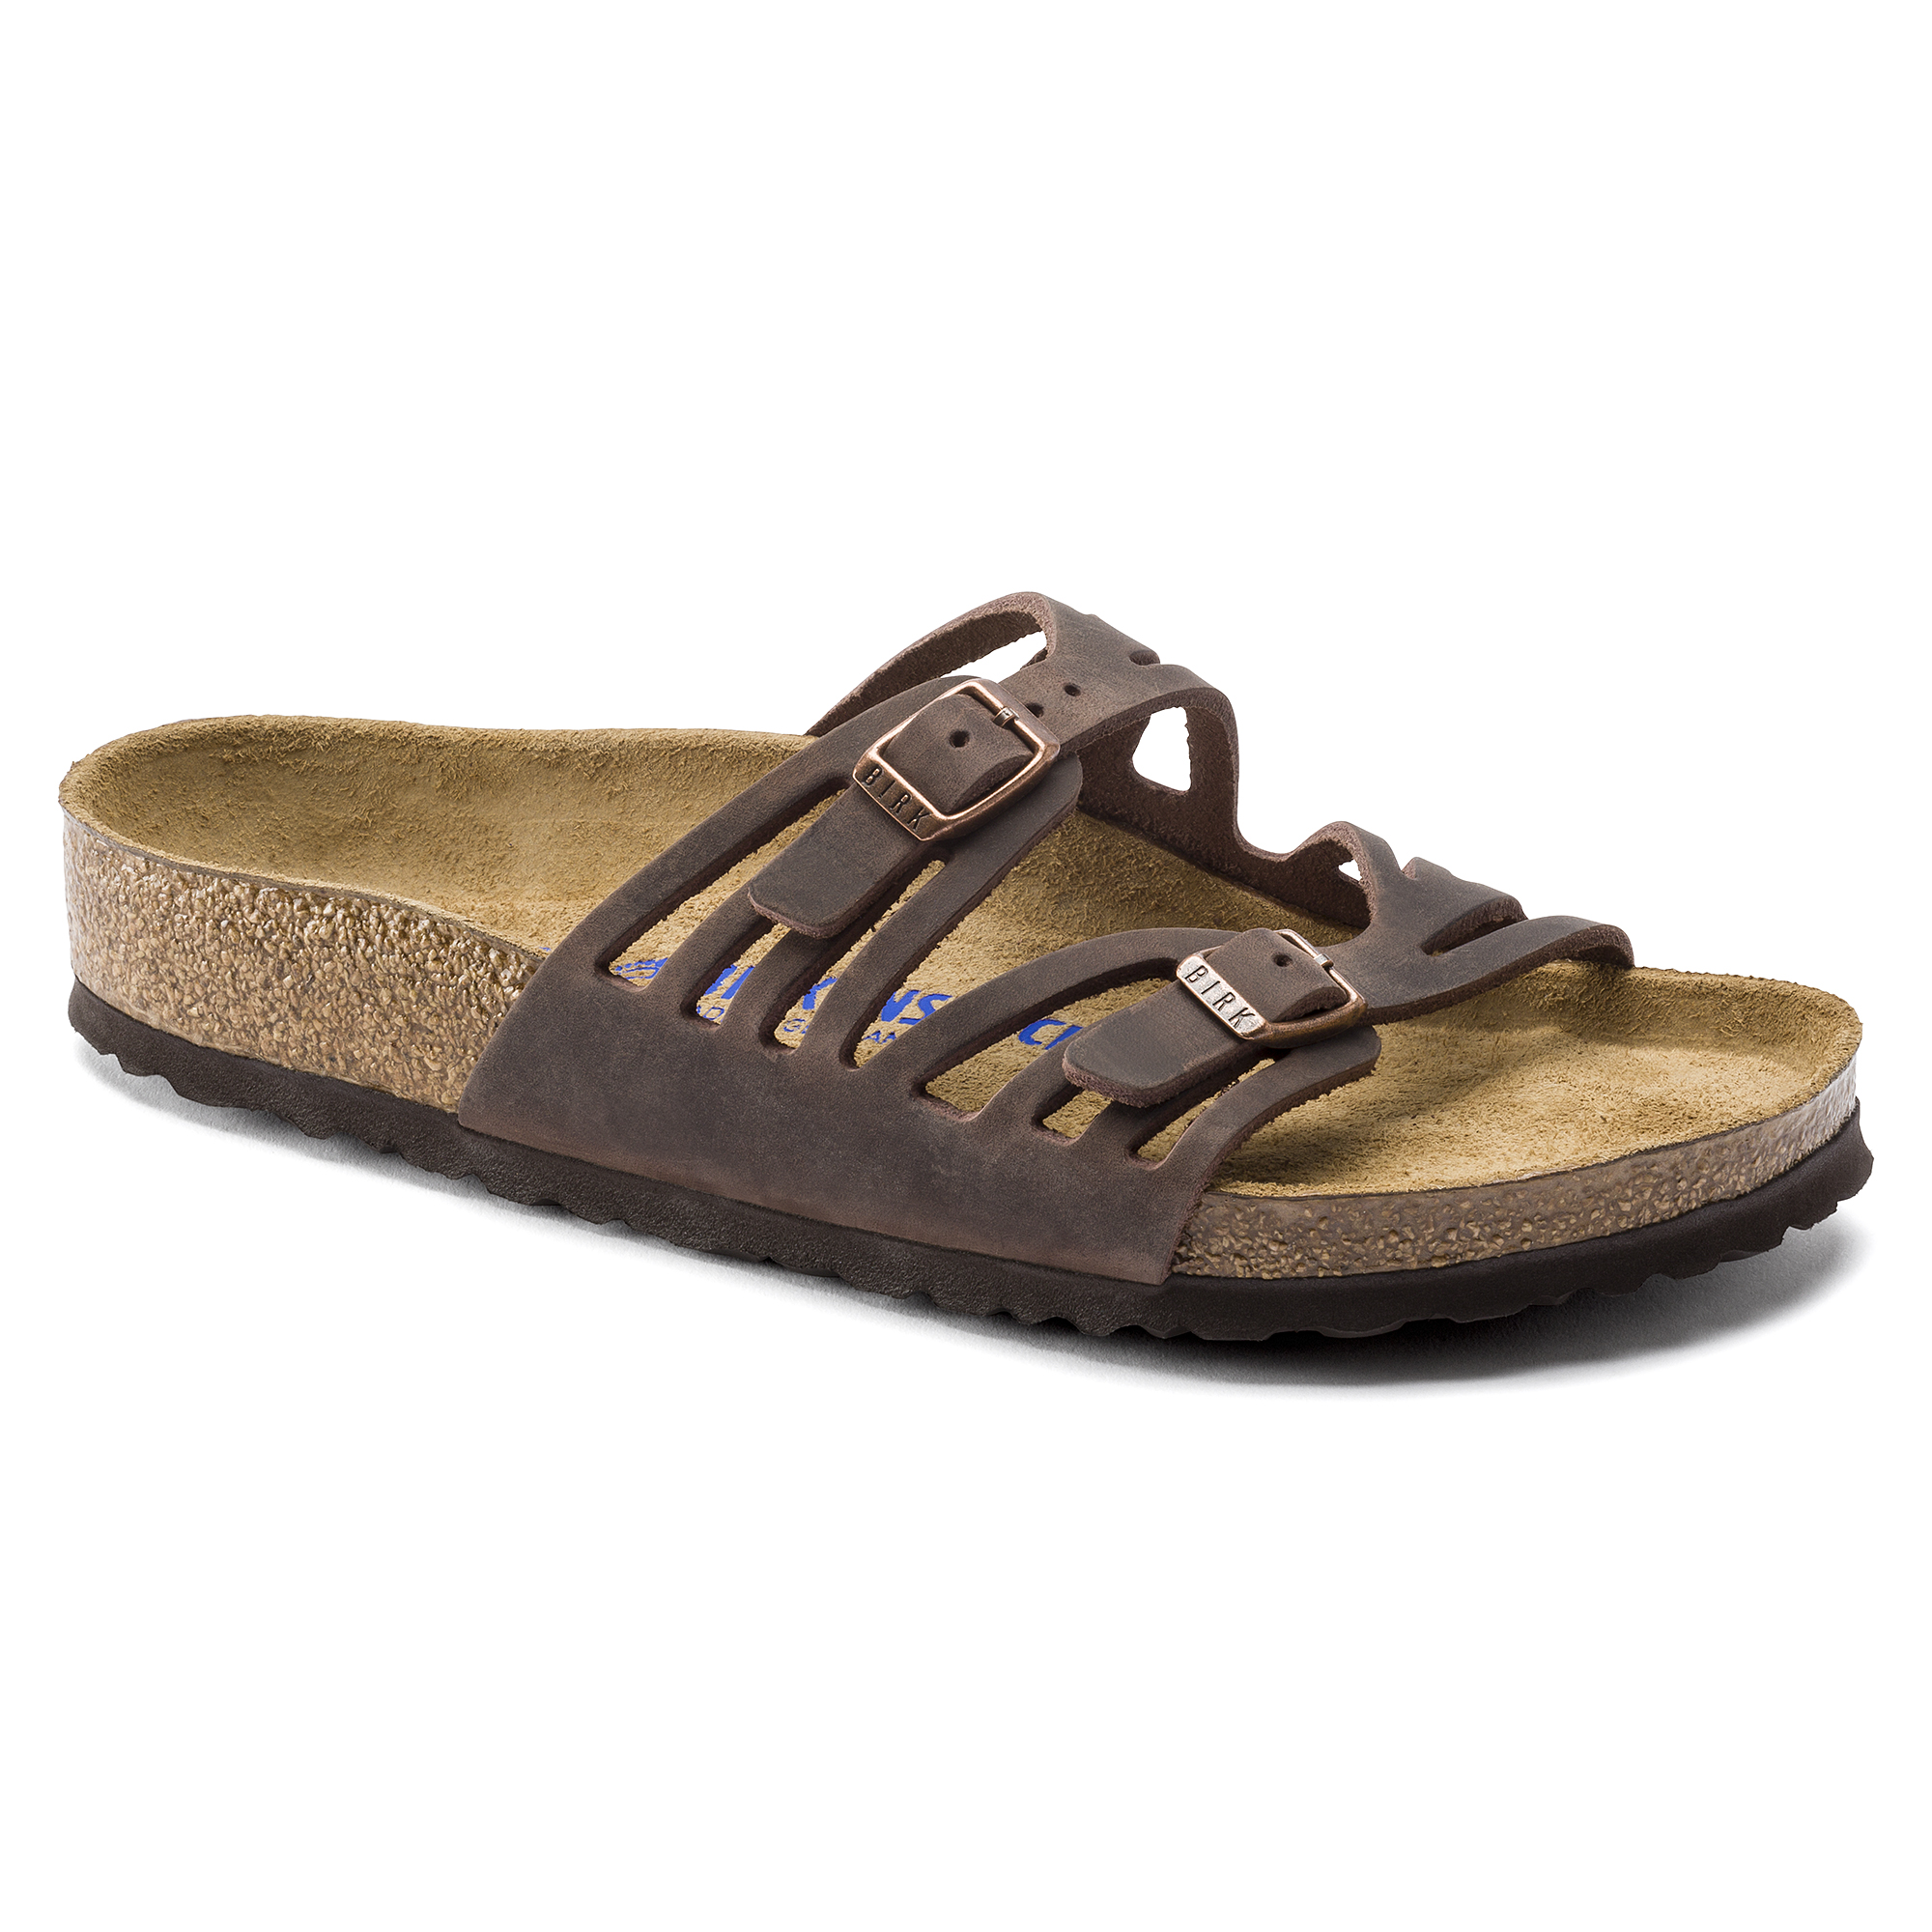 Granada Oiled Leather | shop online at